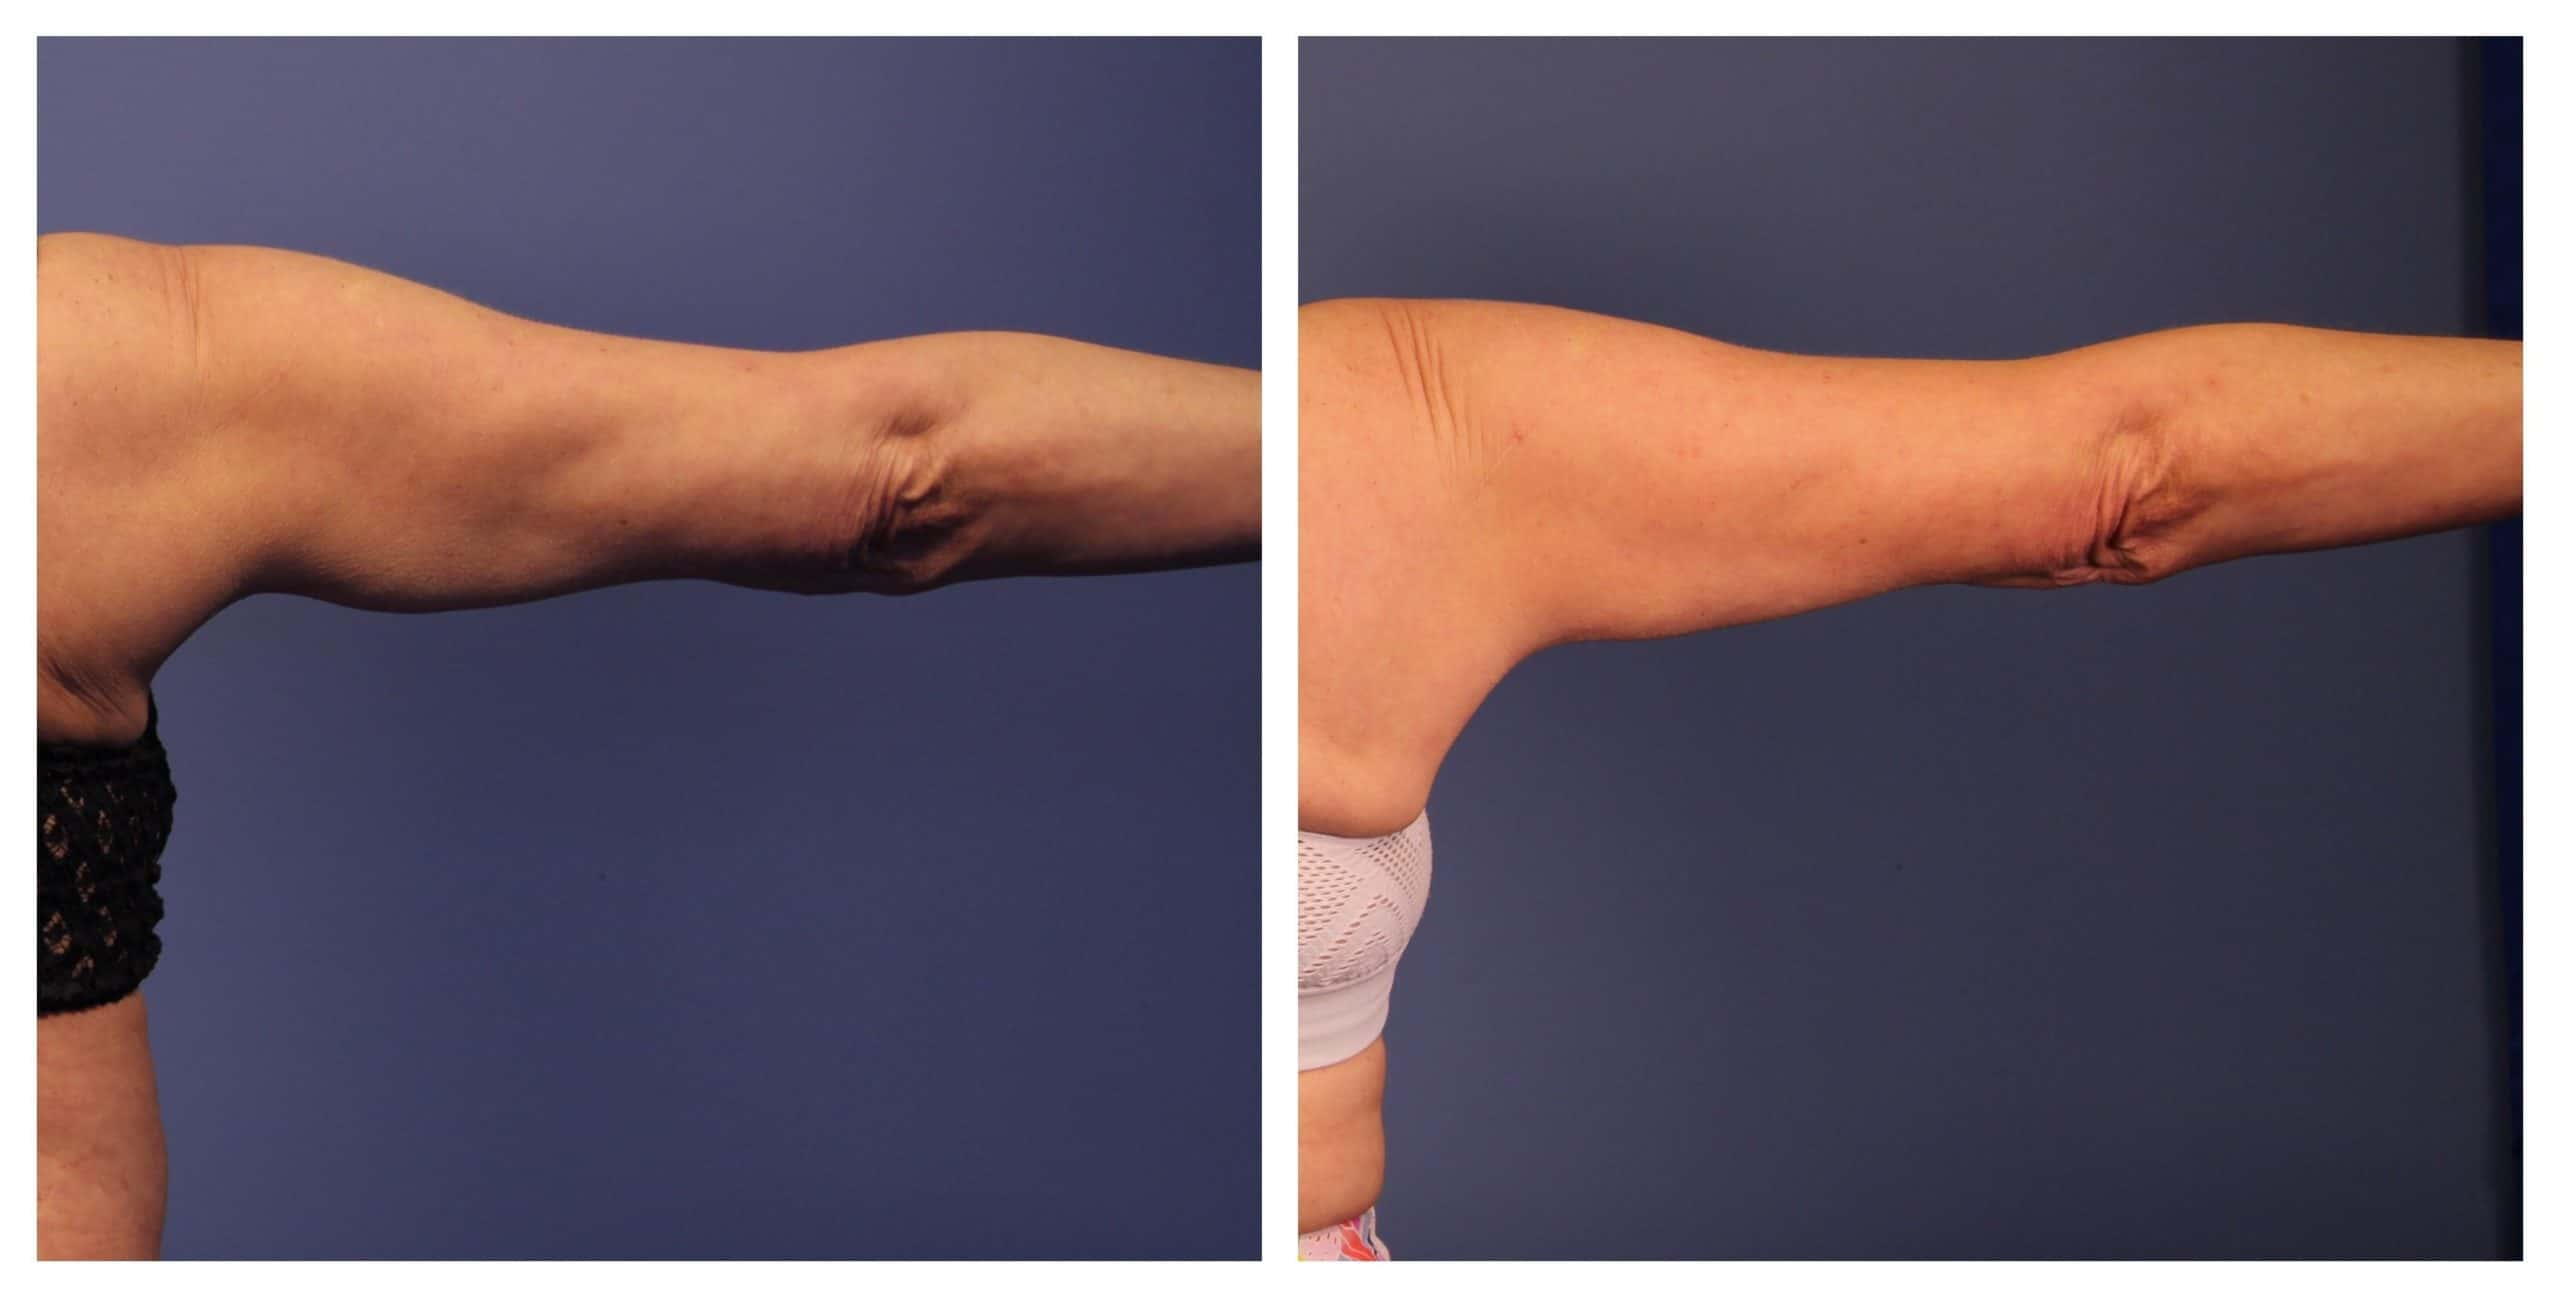 CoolSculpting arm before and after